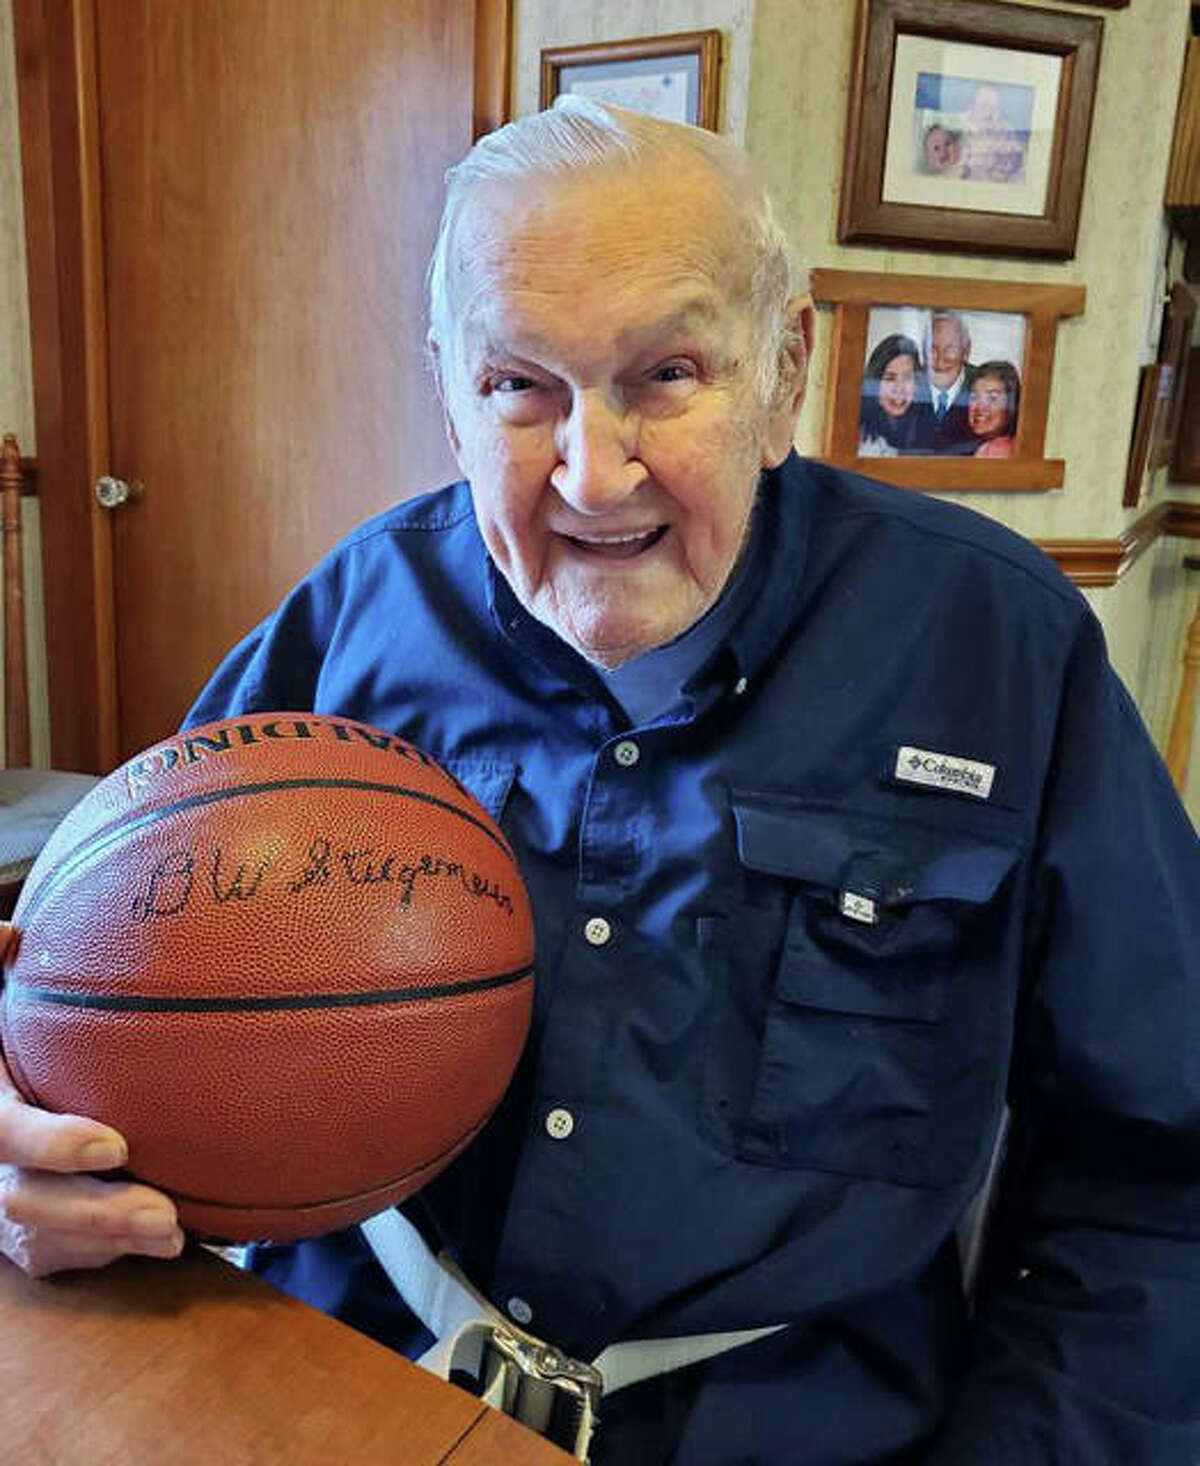 Staunton's Del Stiegemeier, a 97-year-old veteran of World War II, will be inducted in the Friends of Basketball category by the IBCA Hall of Fame when the Class of 2021 is honored later this year at Illinois State in Normal. He was the scorekeeper for Staunton Bulldogs basketball for 25 seasons, ending with a Class A state championship in 1993.